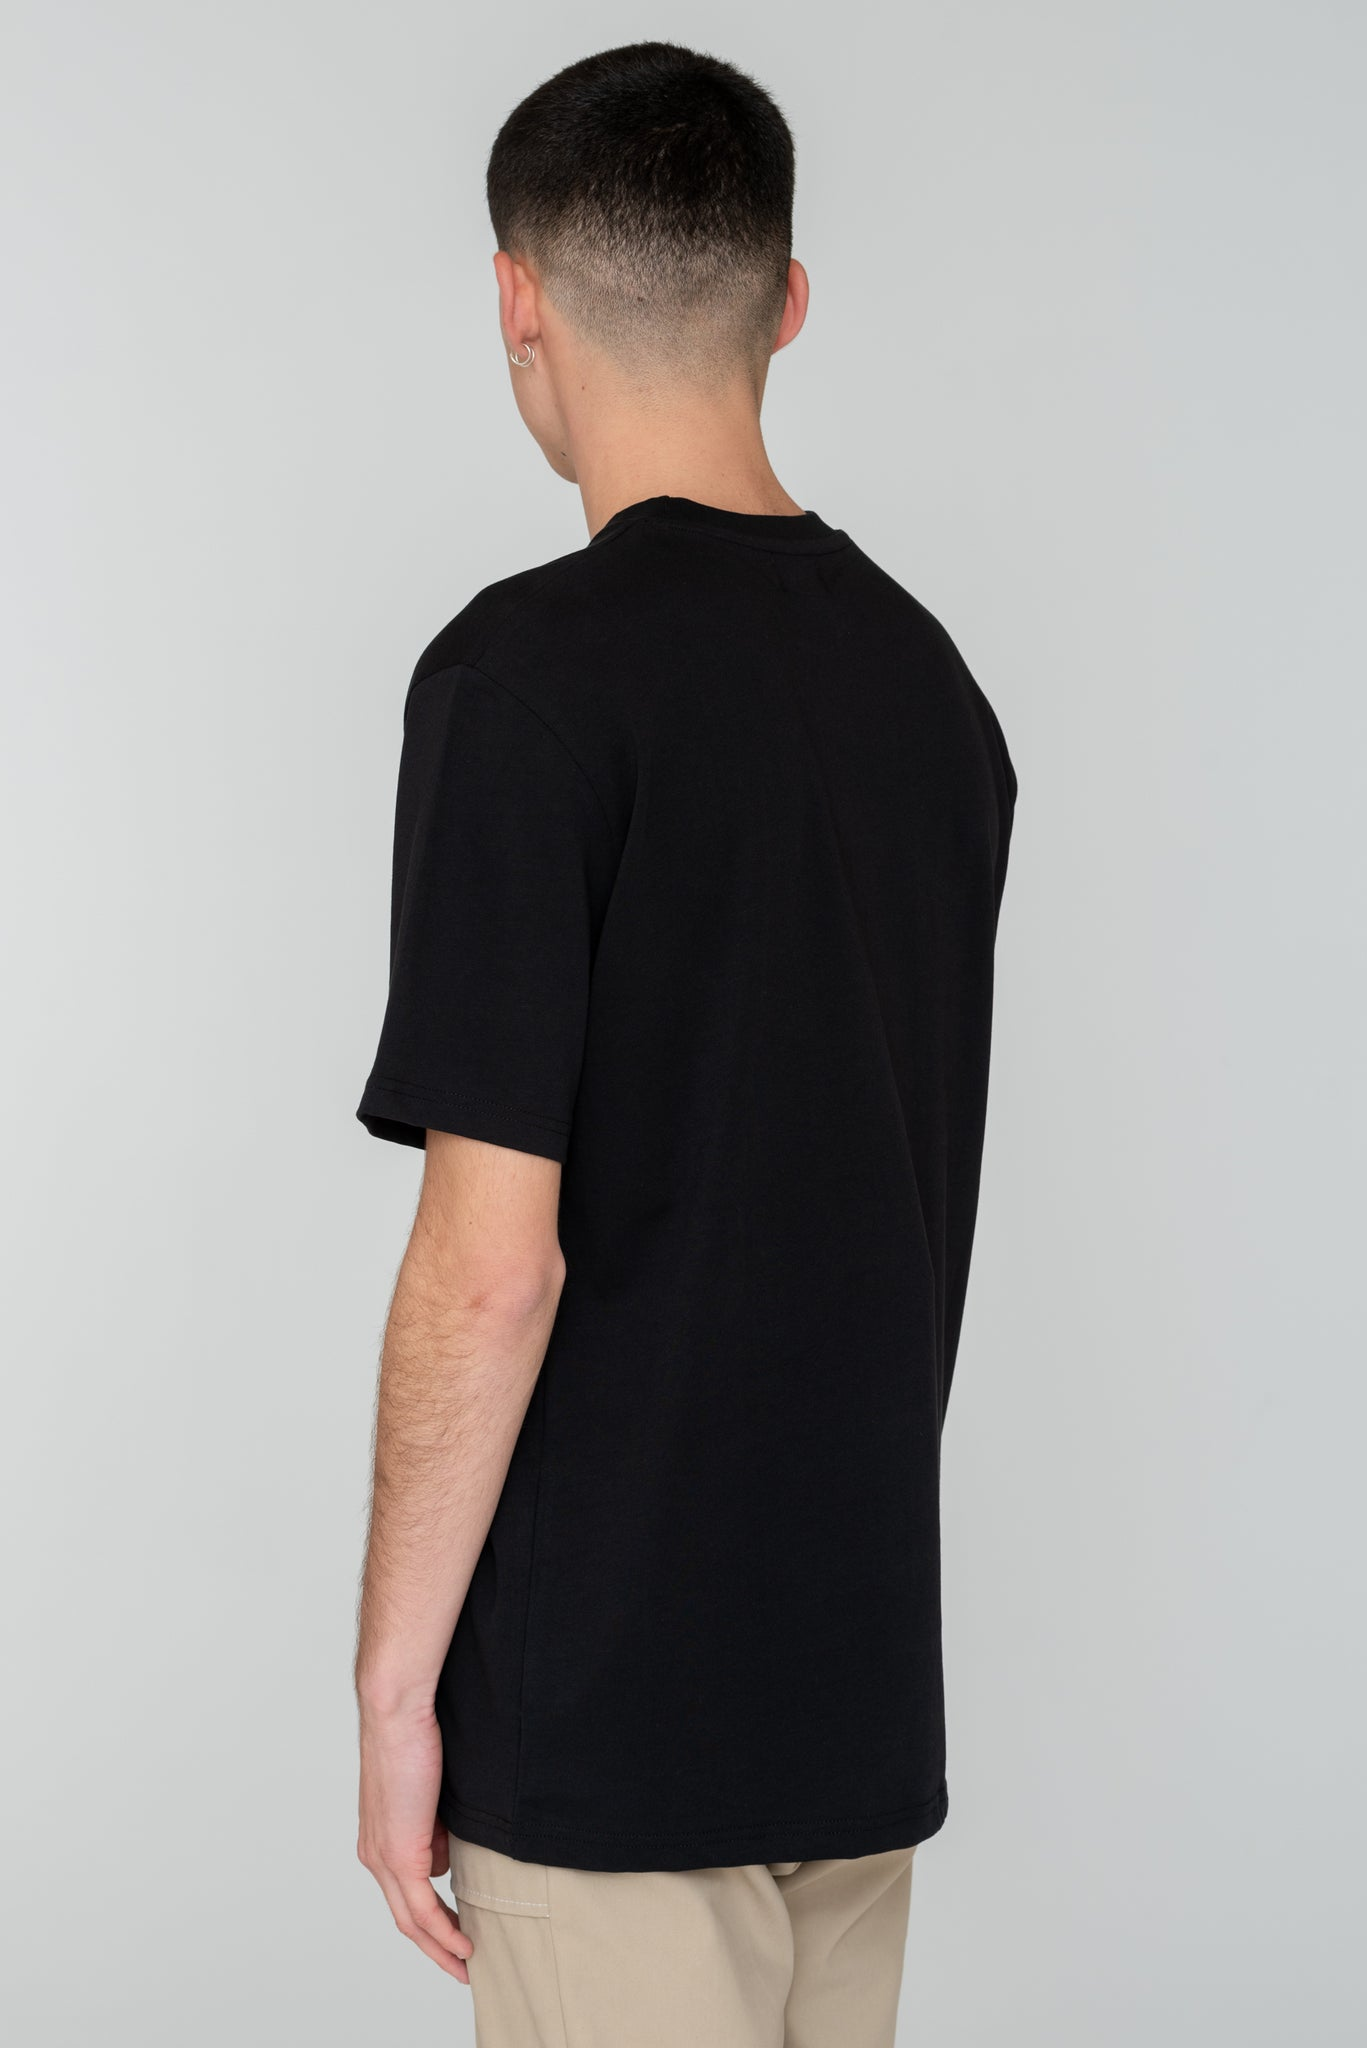 Troy Black T-shirt - Arte Antwerp